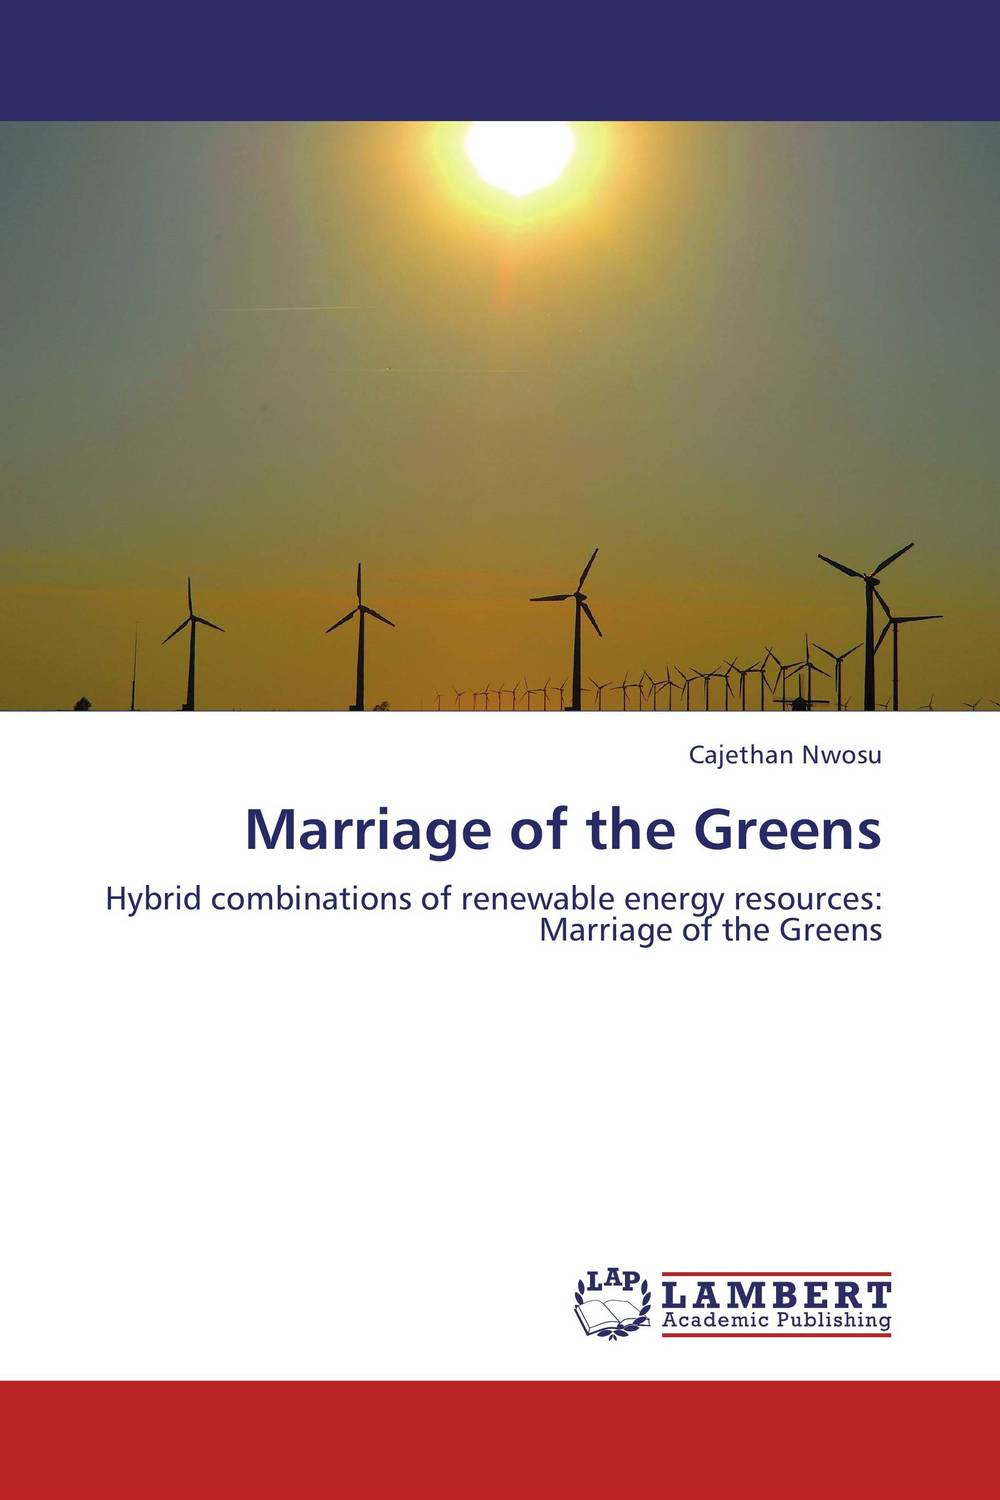 Marriage of the Greens marriage of the greens